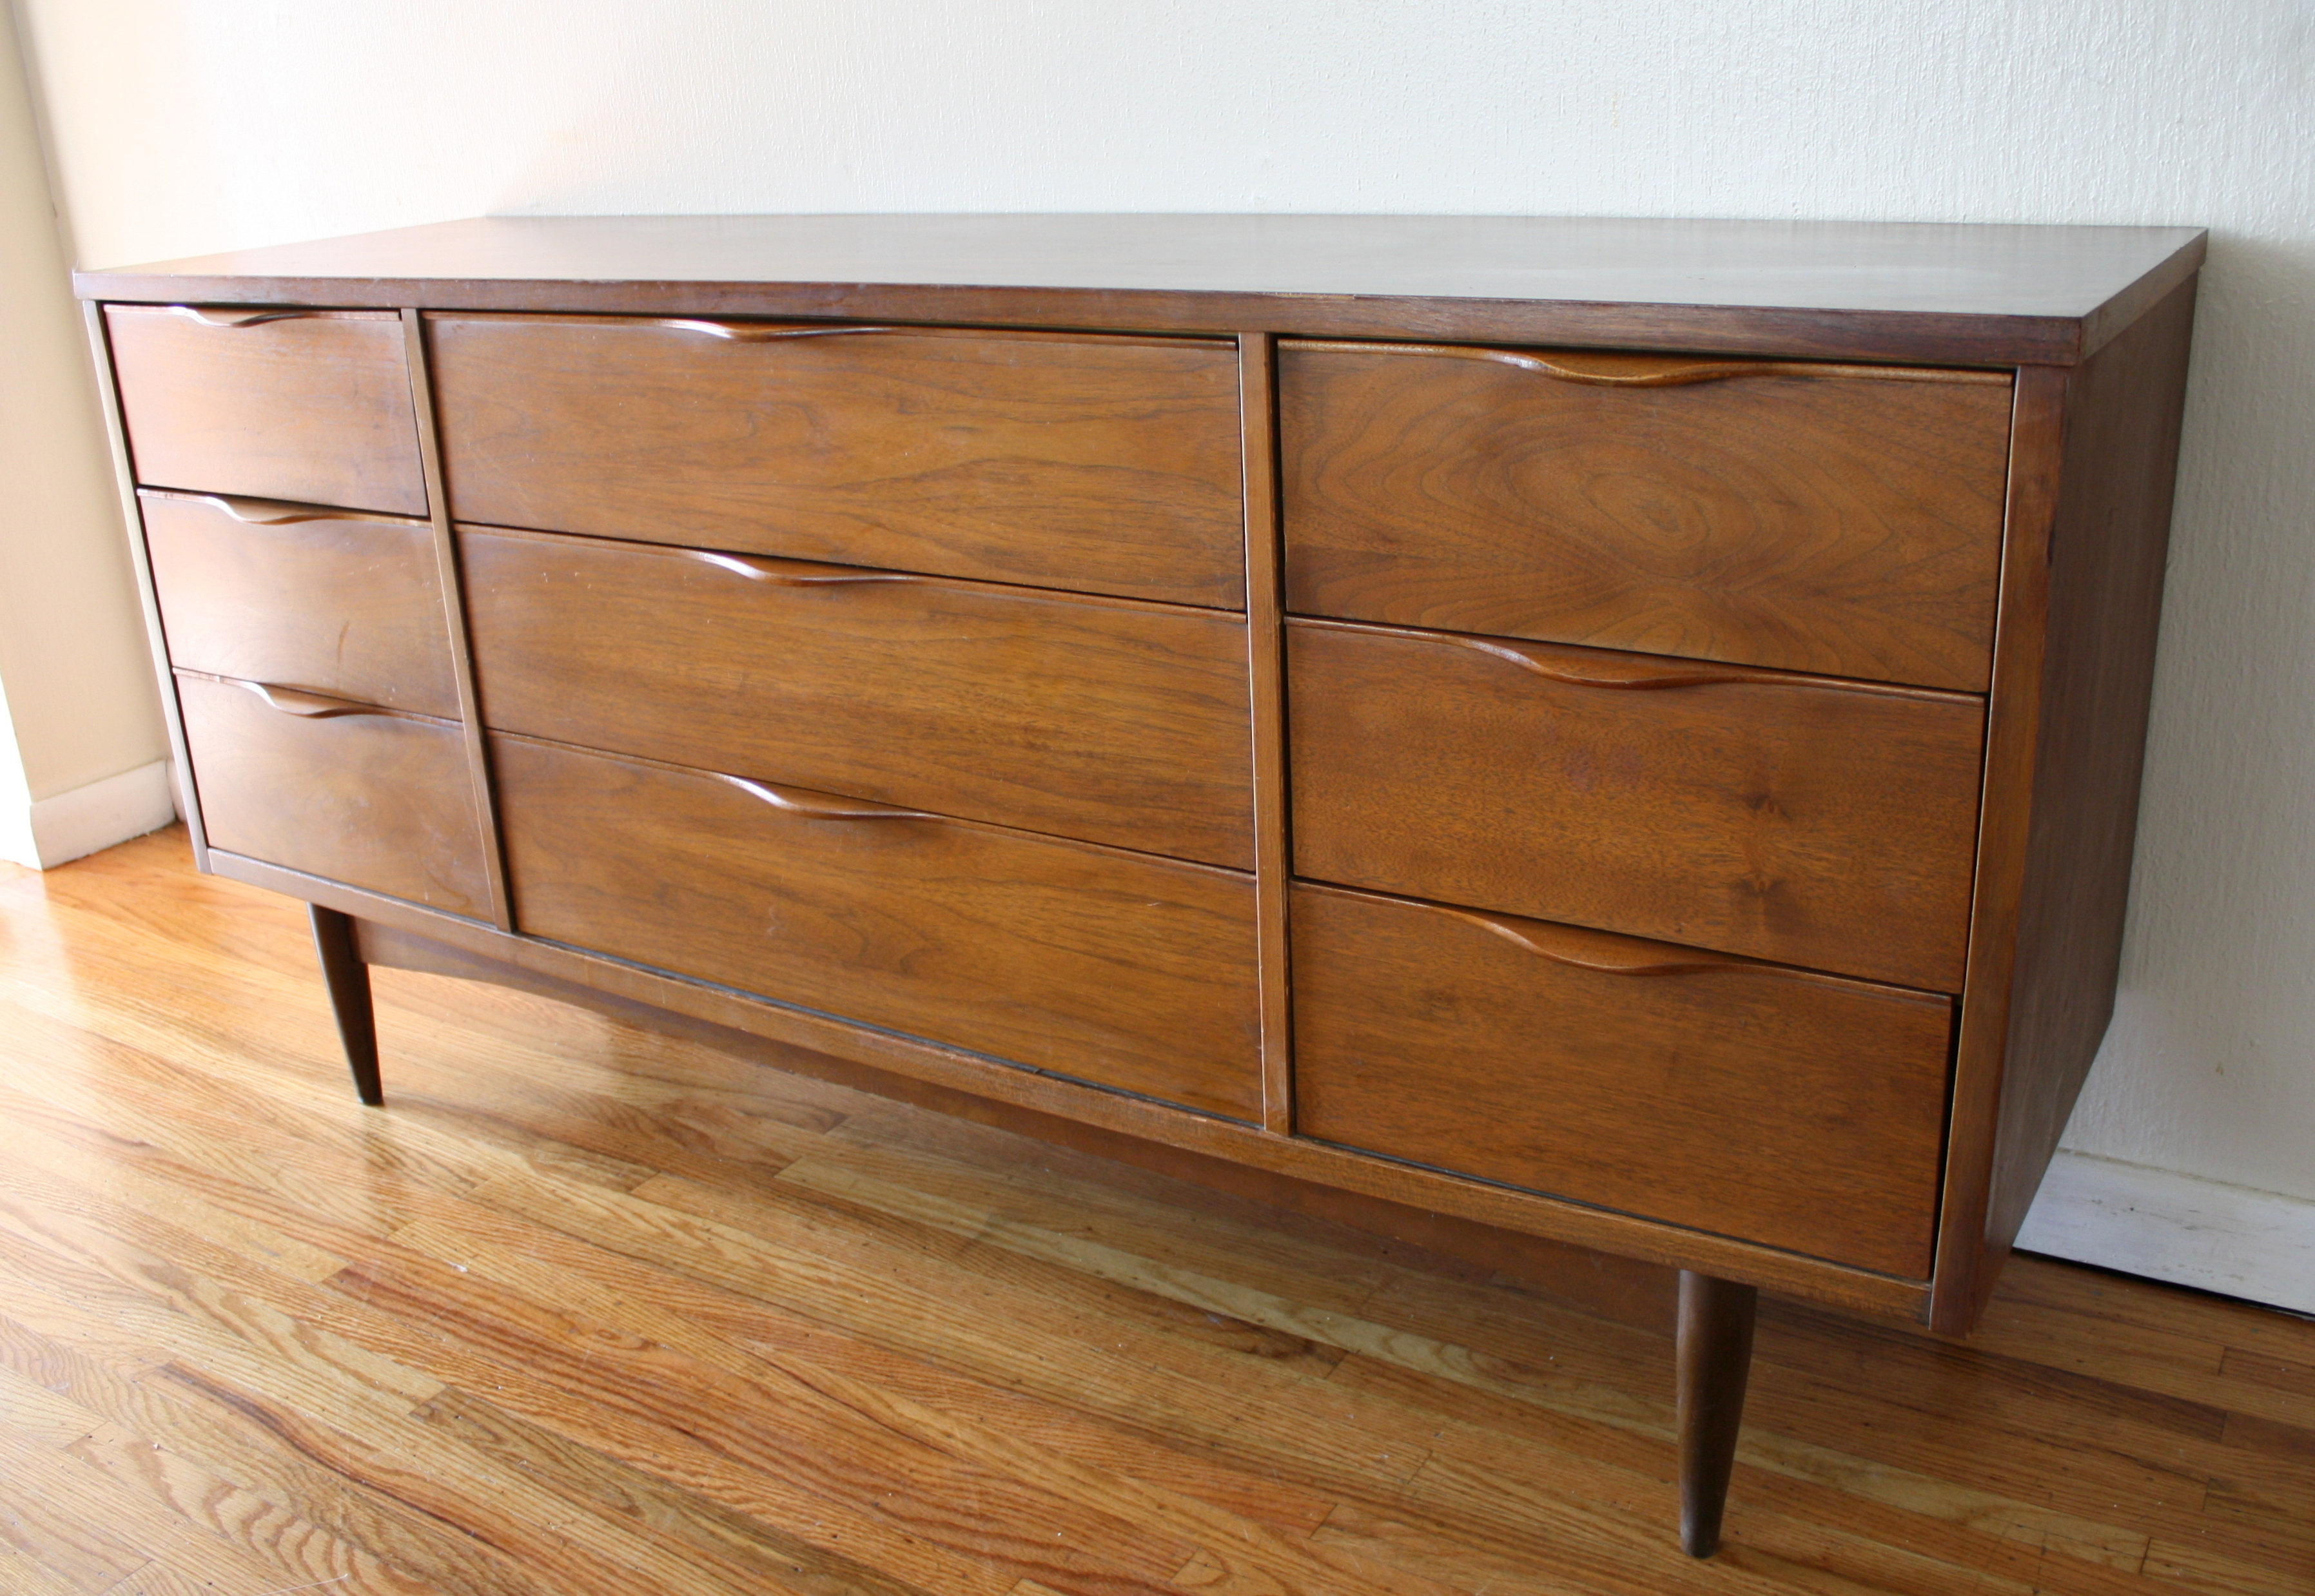 Mid Century Modern Credenza Low Dressers  Picked Vintage. Swix Waxing Table. Dish Tv Help Desk. Lowes Work Table. Changing Tables For Sale. End Table Drawers. Girls Desk Set. Cheap Foldable Table. Wooden Desk Organizers